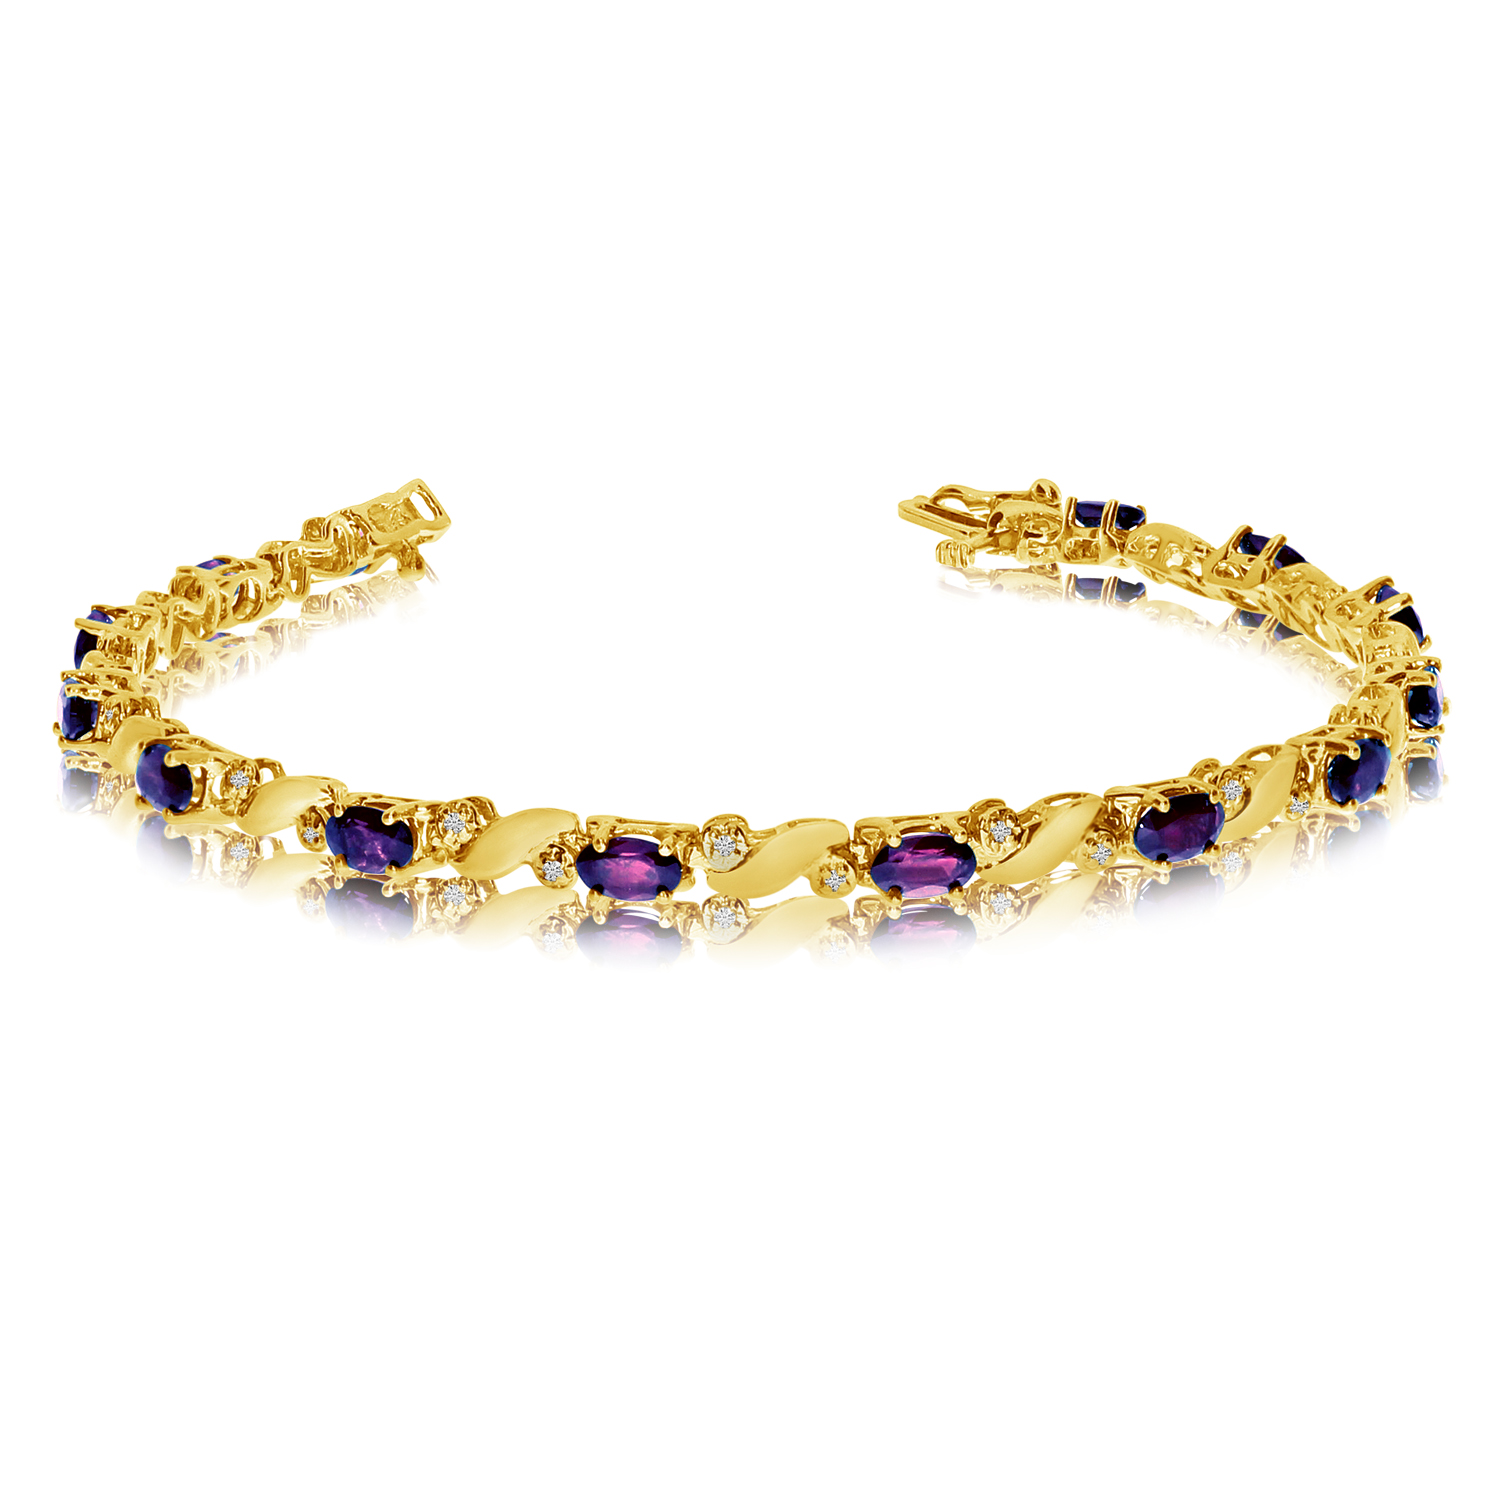 14k Yellow Gold Natural Amethyst And Diamond Tennis Bracelet by LCD